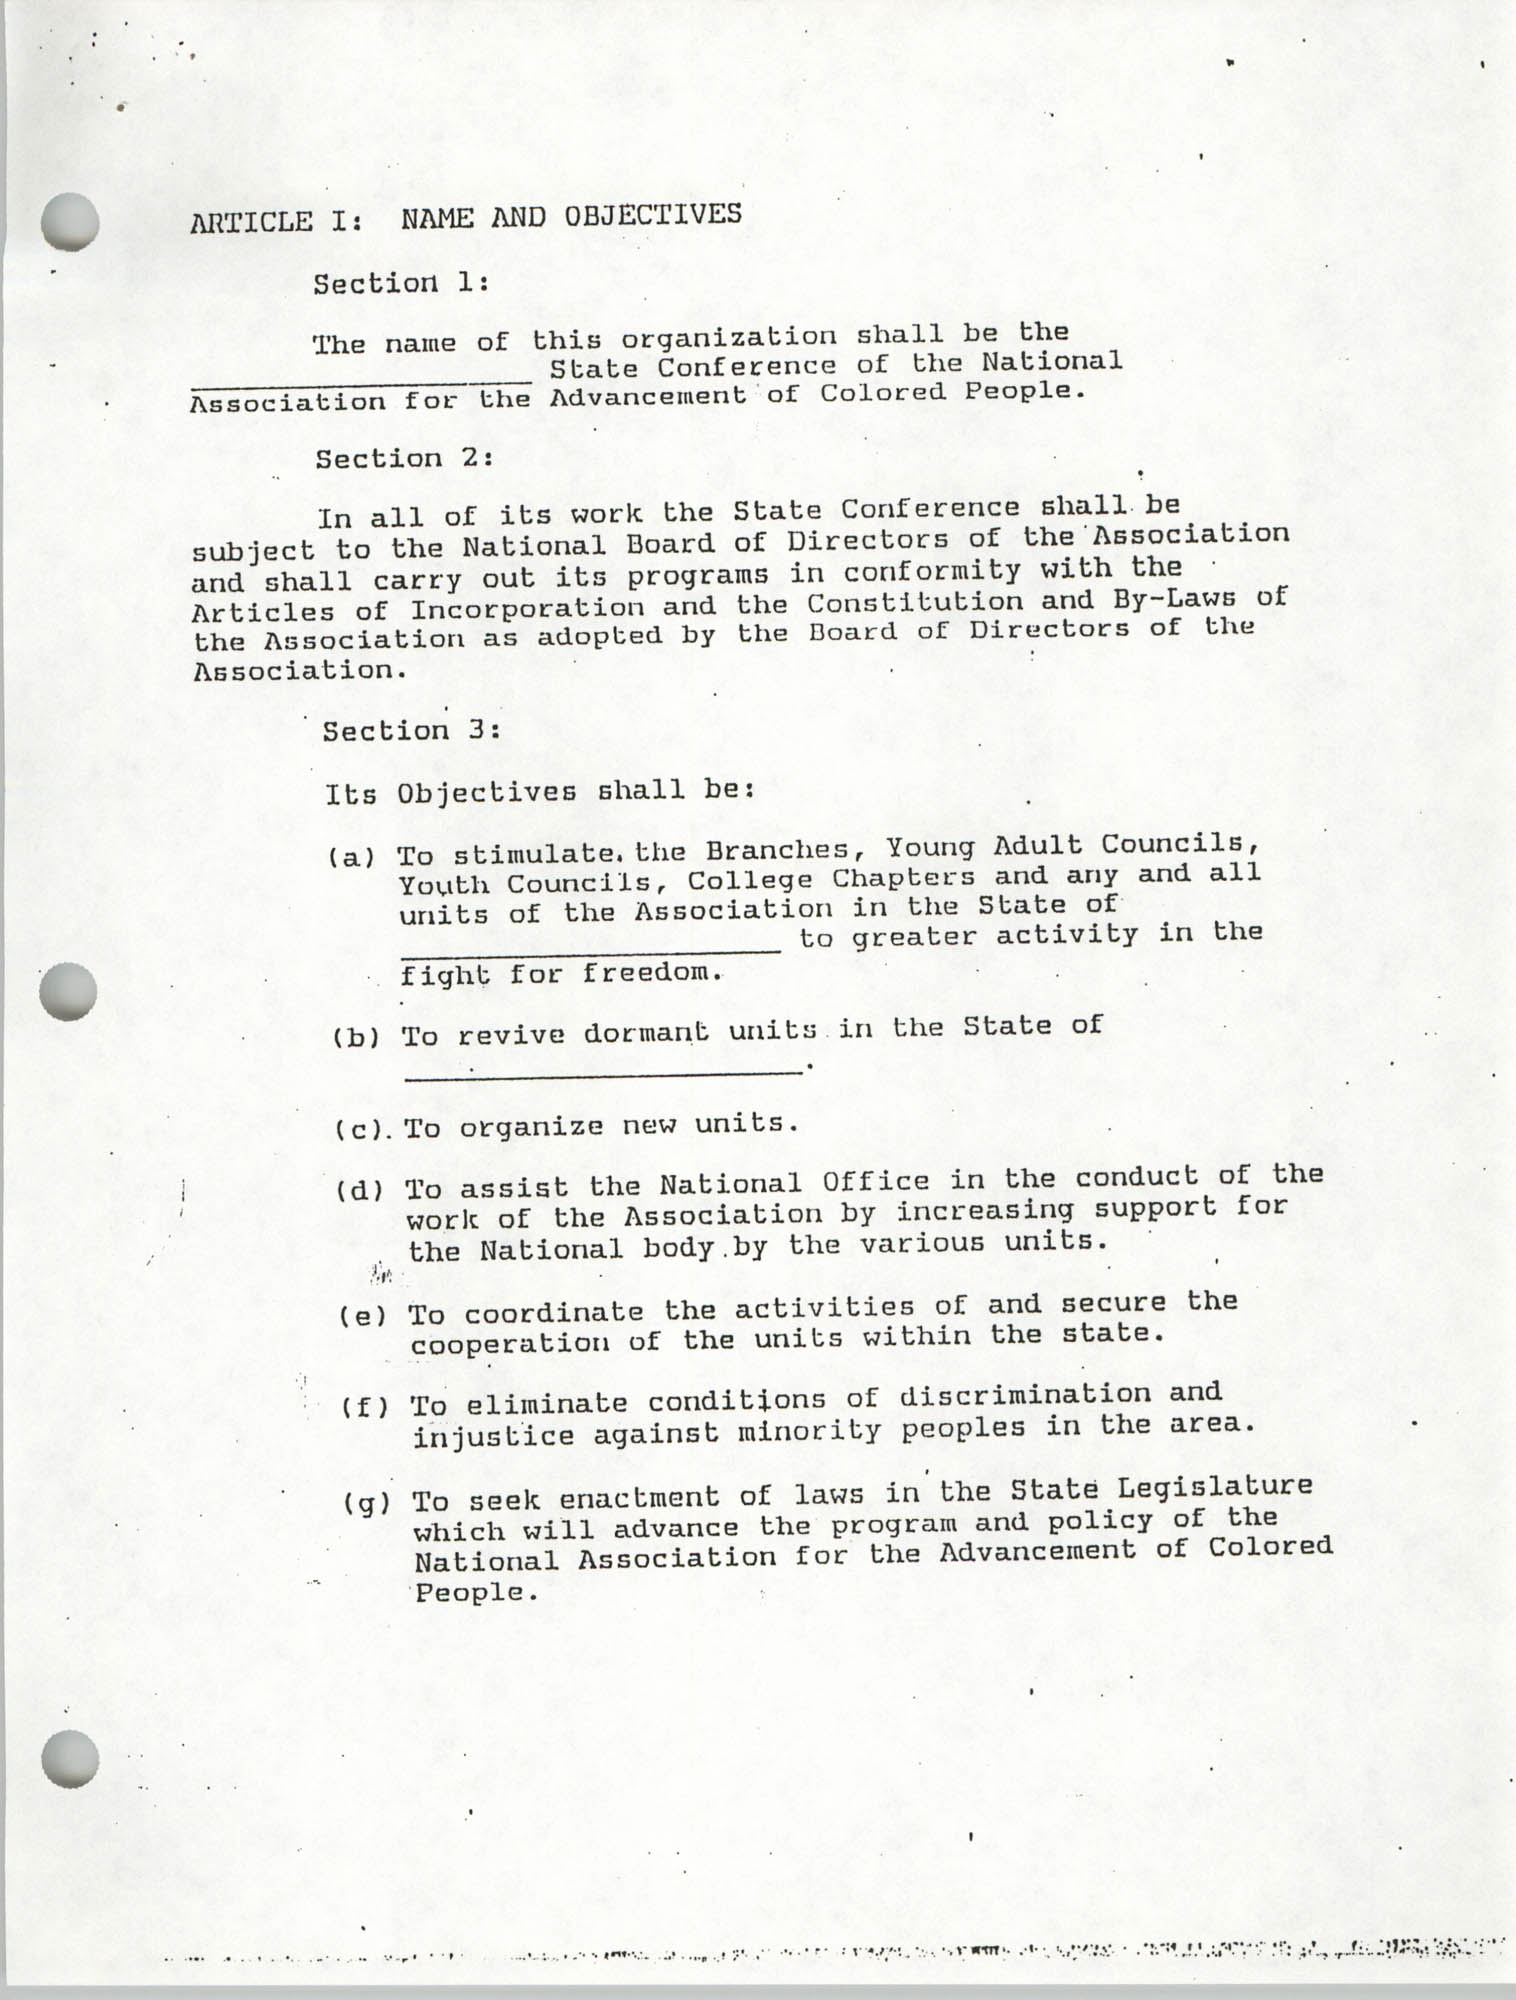 Constitution for State Conferences of the NAAC, Page 1